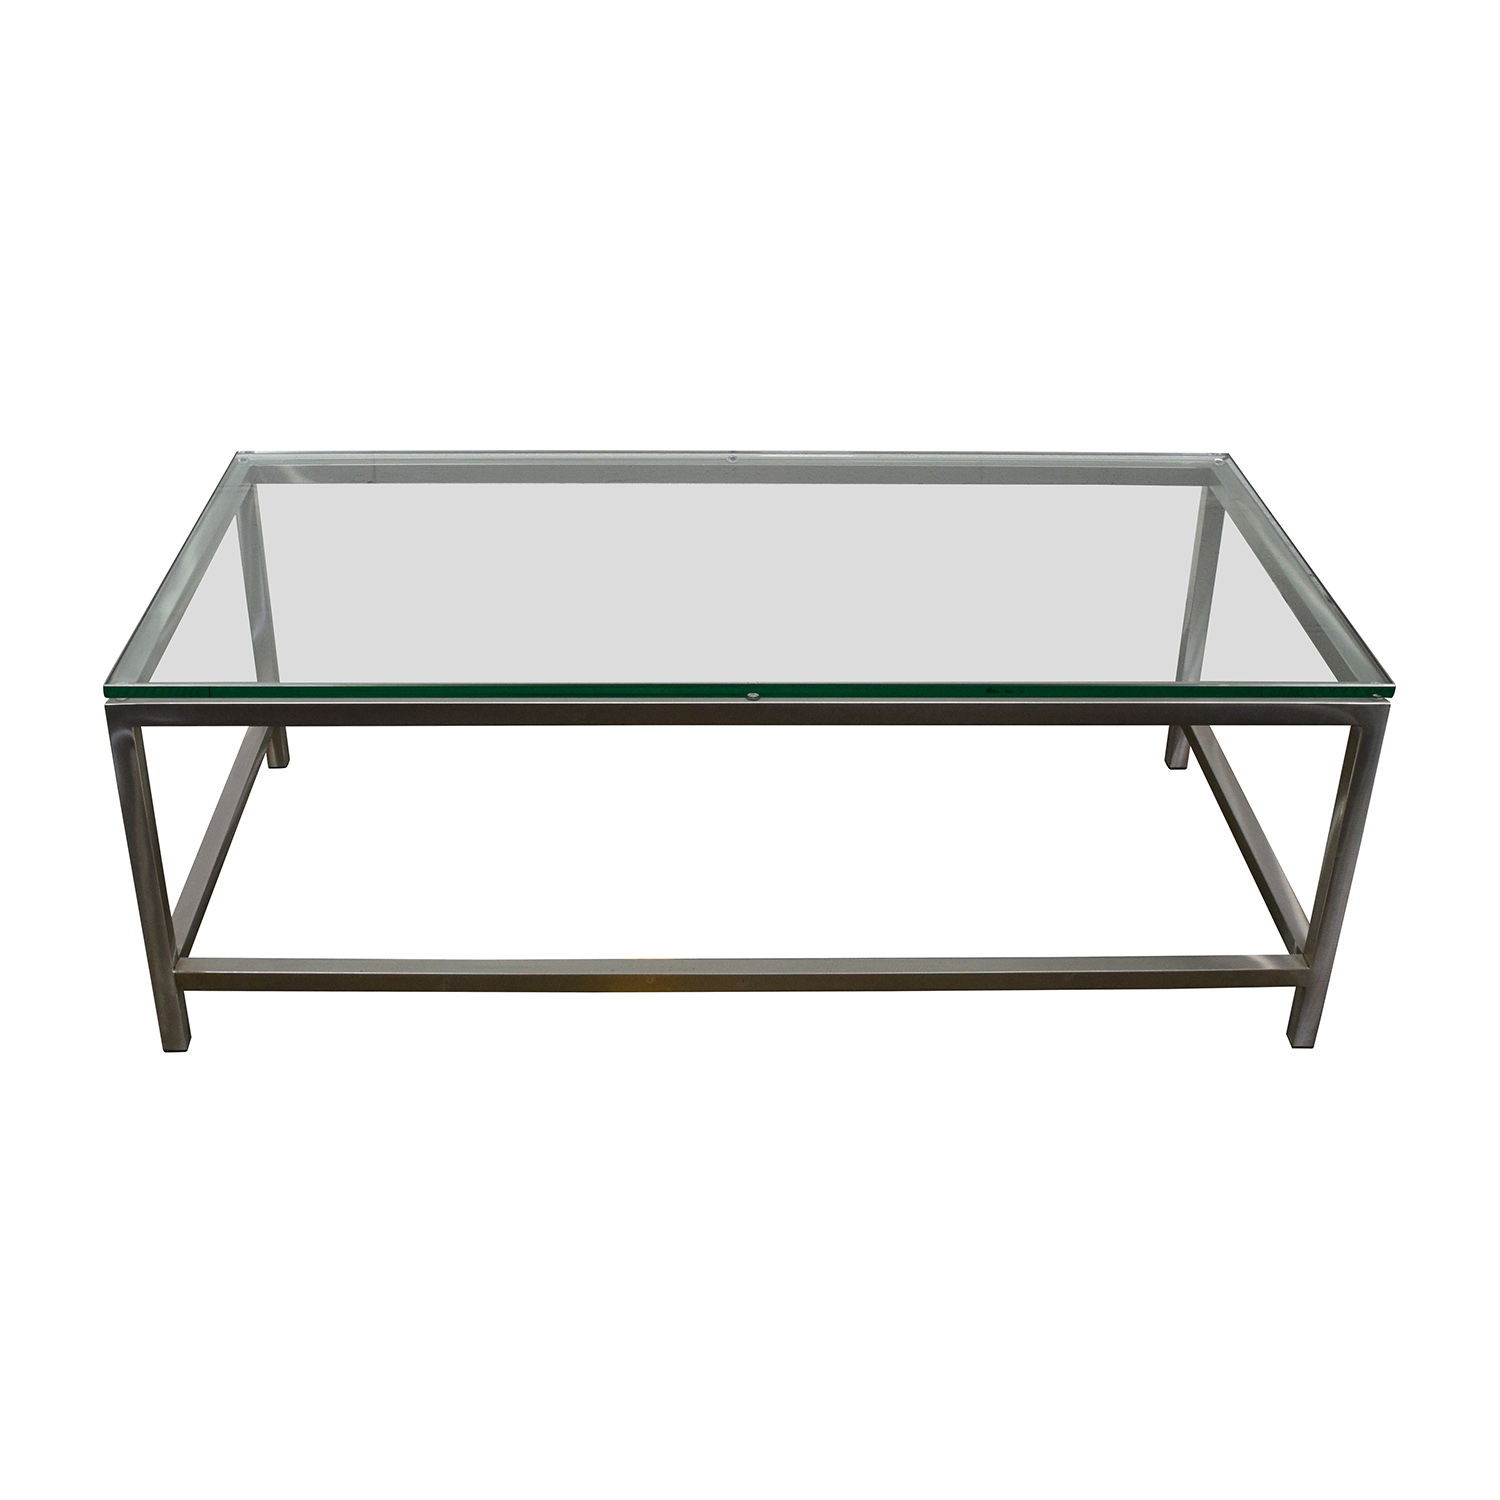 Crate and Barrel Crate & Barrel Era Rectangular Coffee Table Coffee Tables